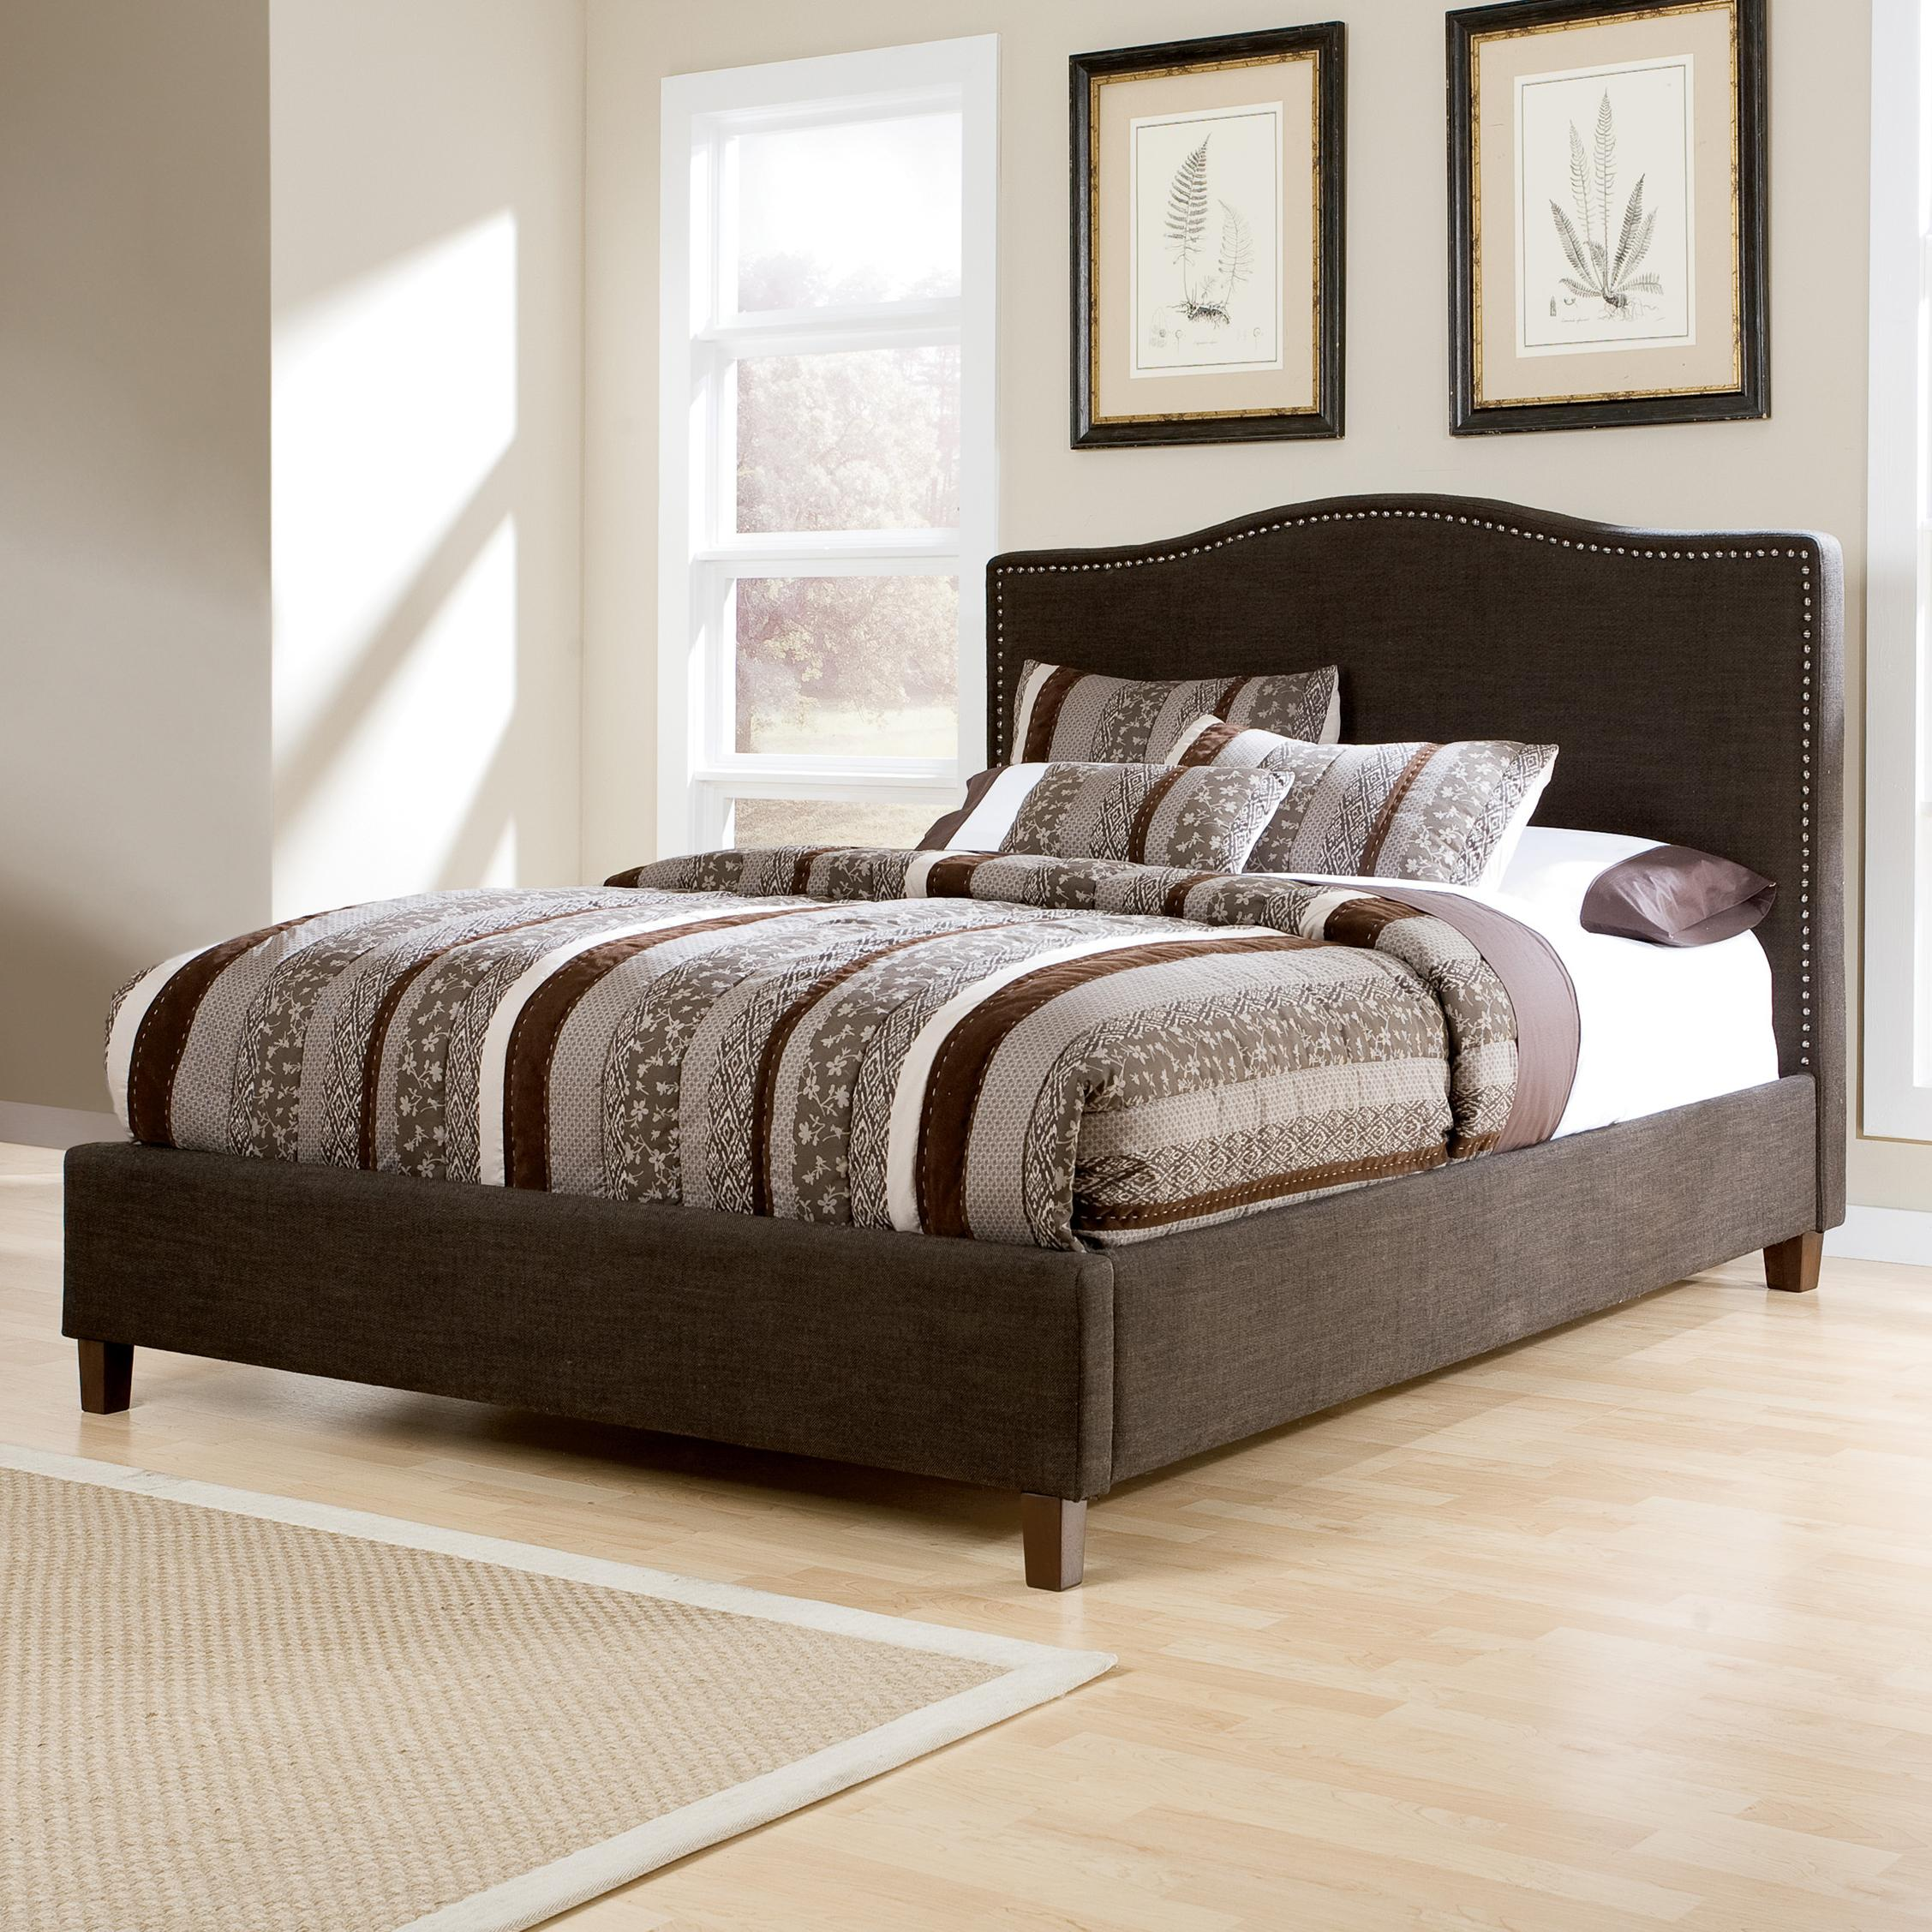 king upholstered bed with brown woven fabric arched headboard u0026 nailhead trim